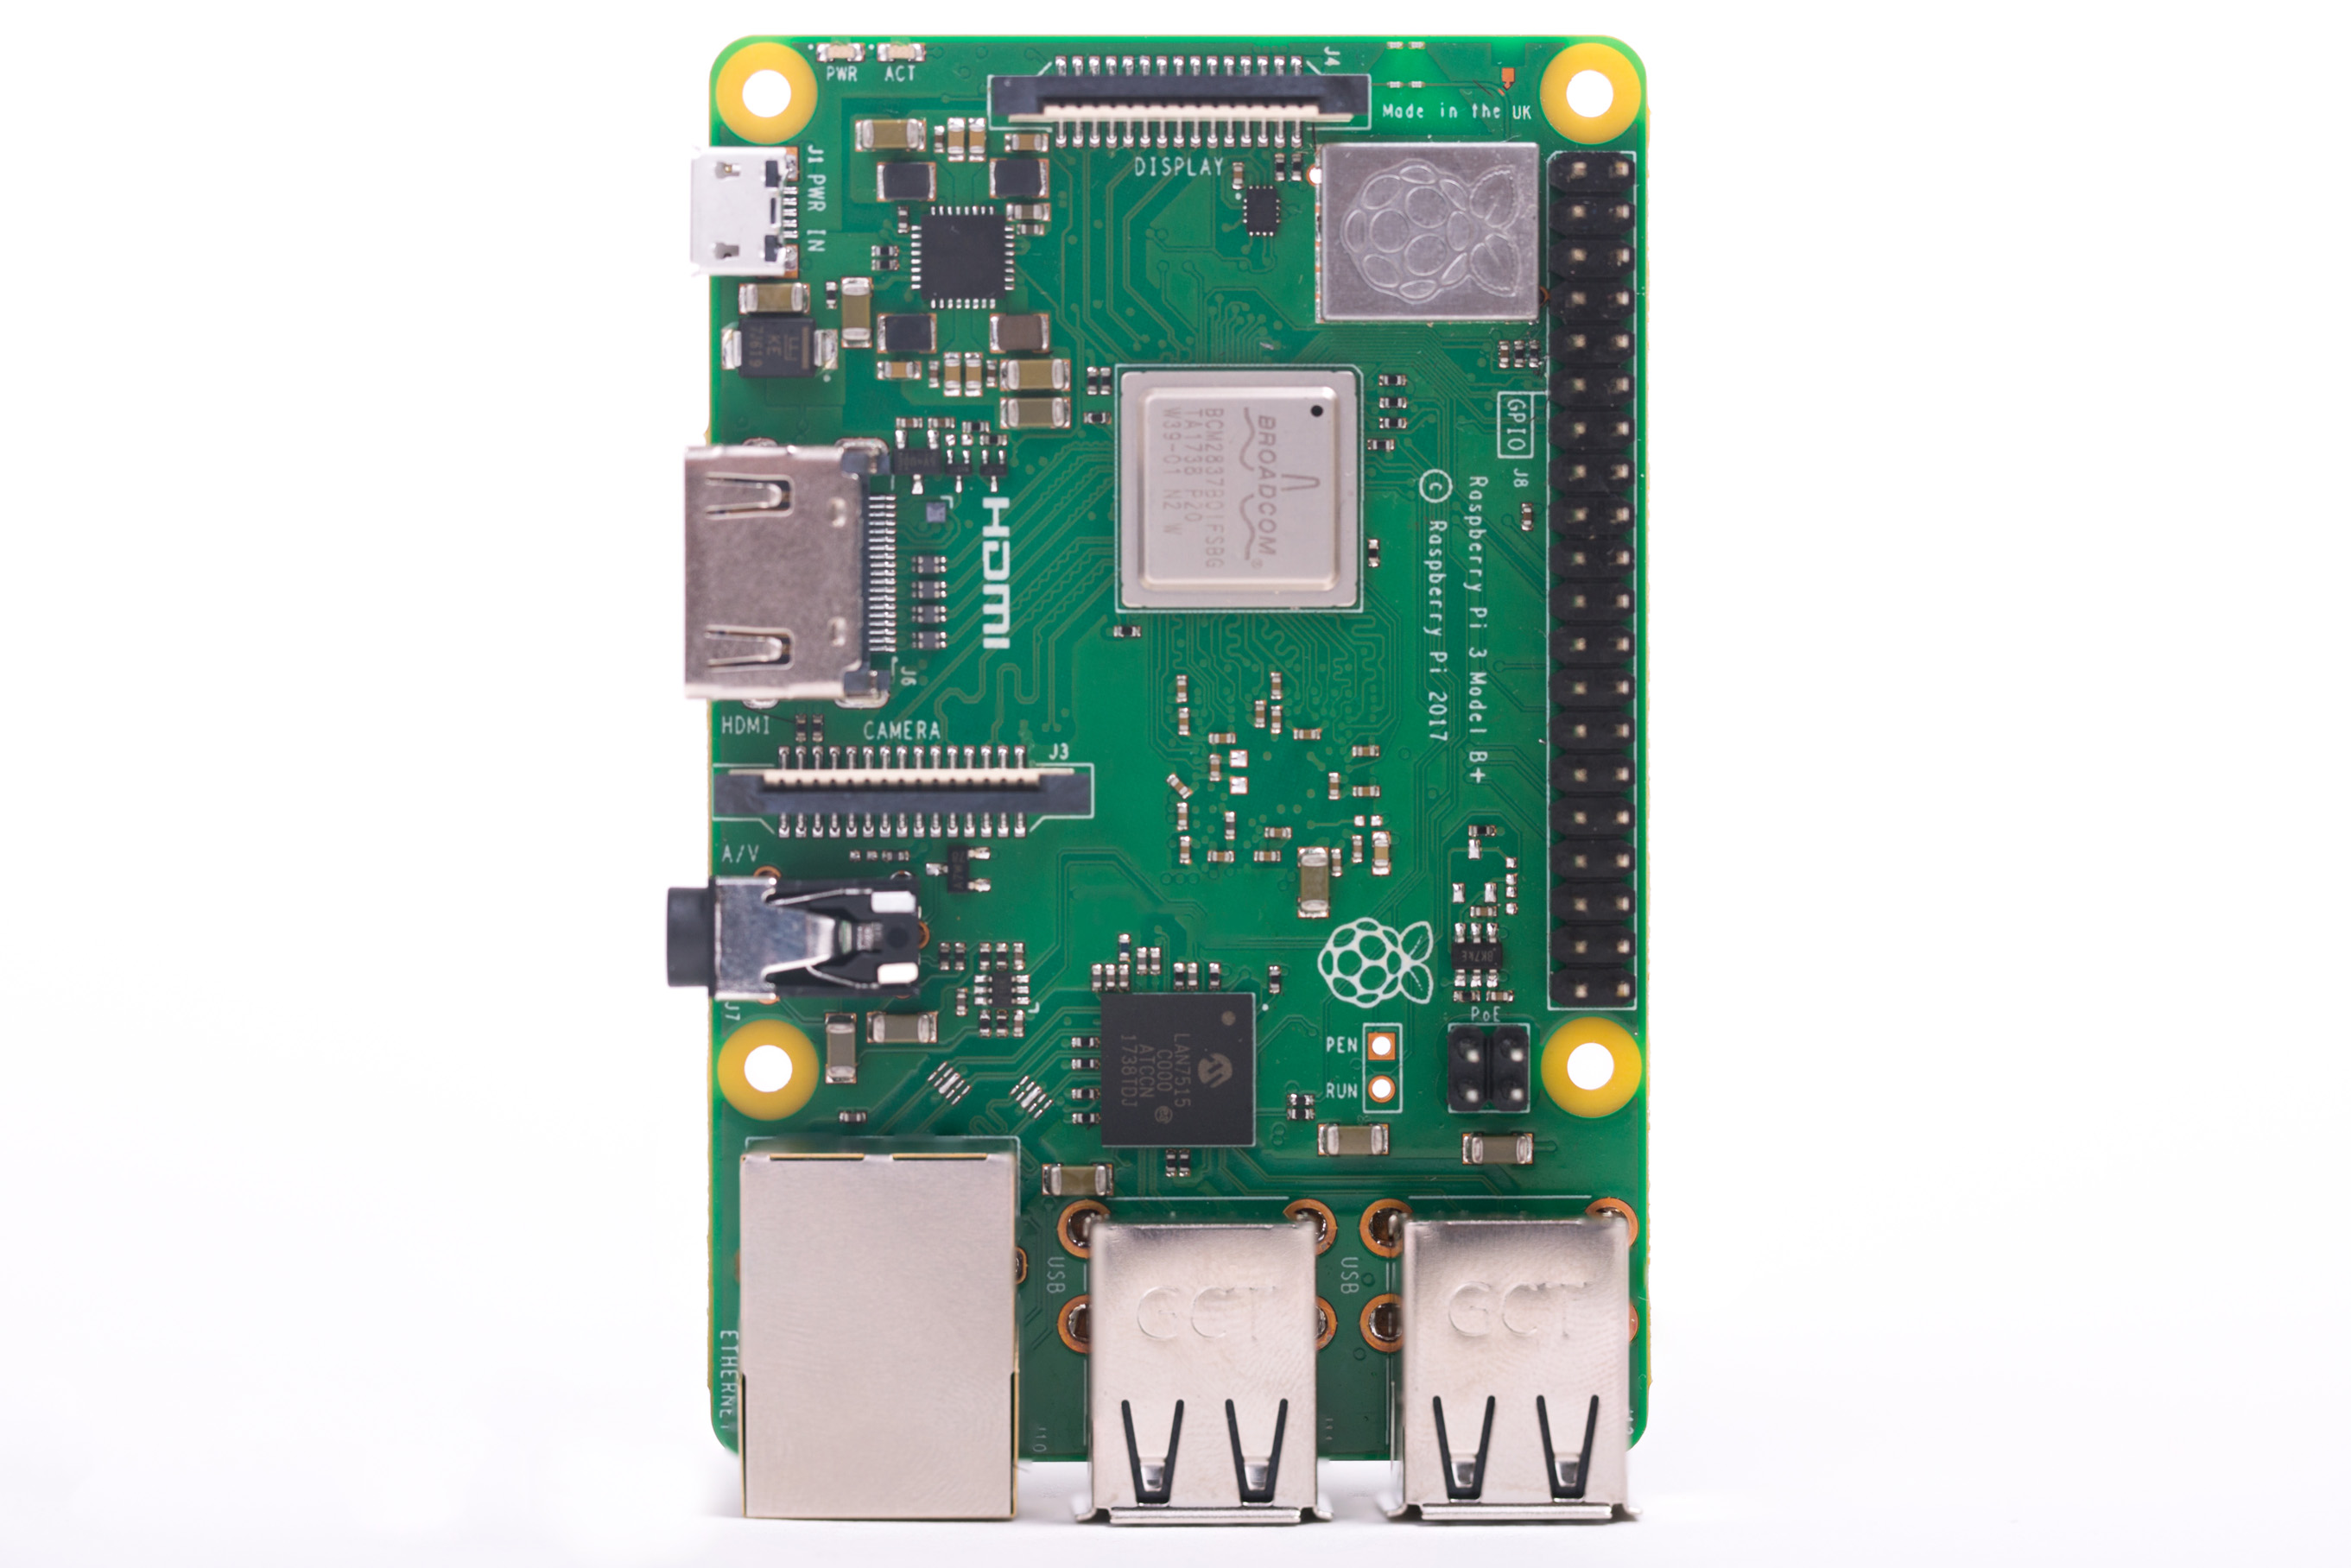 The new Raspberry Pi has 5 GHz Wi-Fi and Bluetooth 4.2